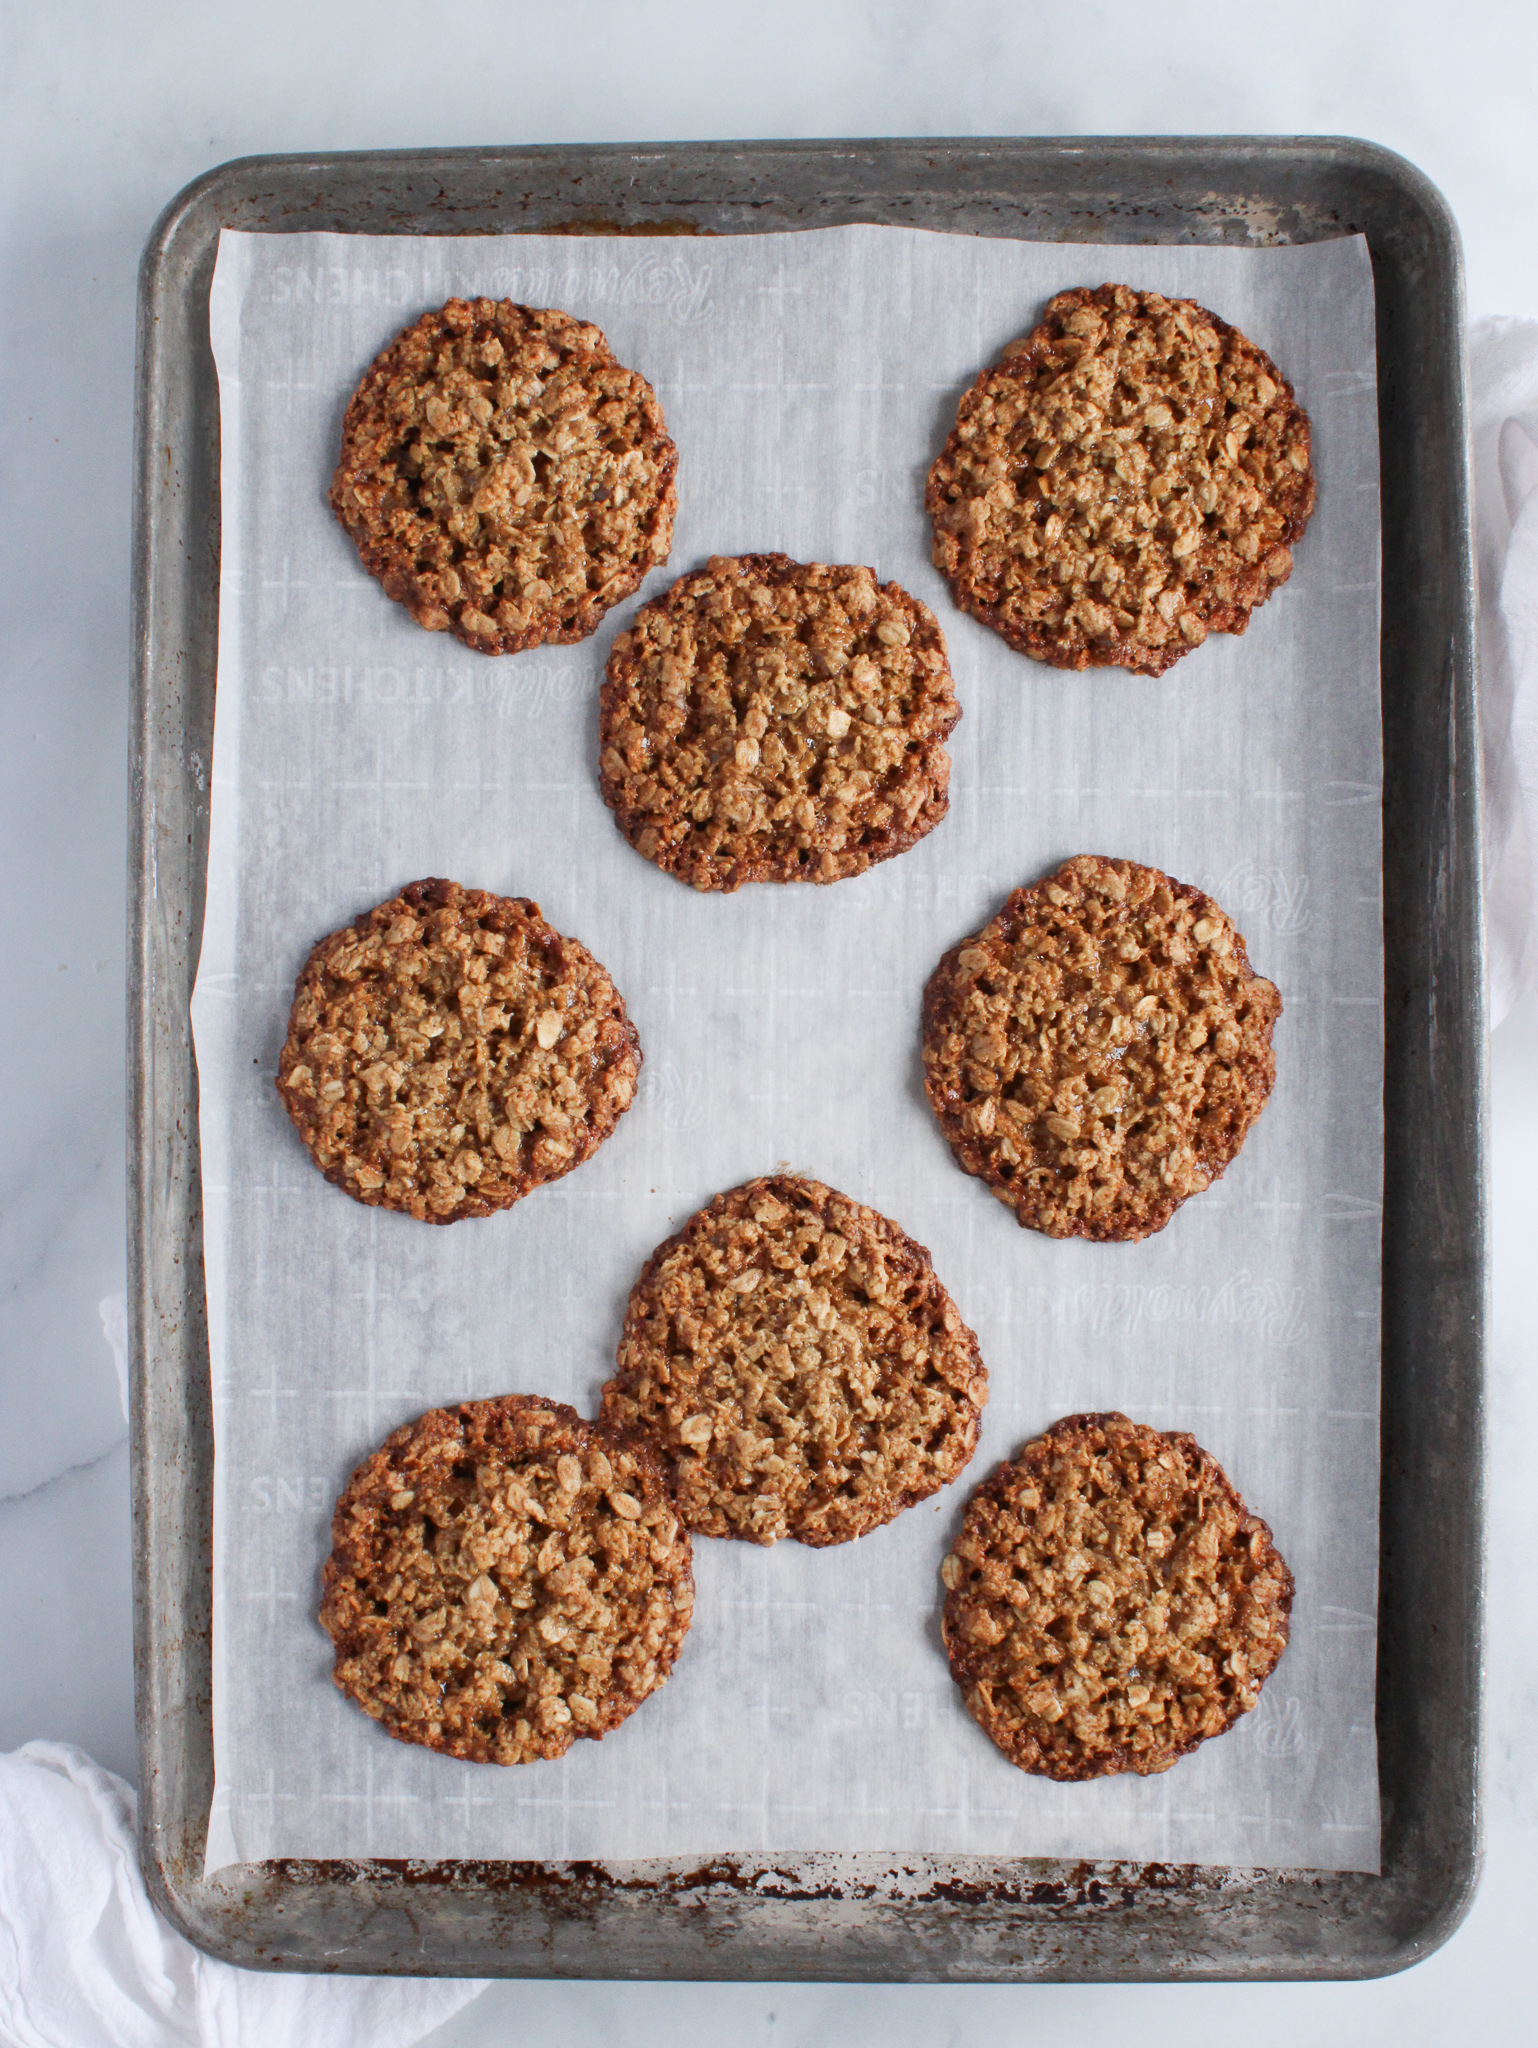 gluten free oatmeal cookies baked and cooling on a baking sheet lined with parchment paper